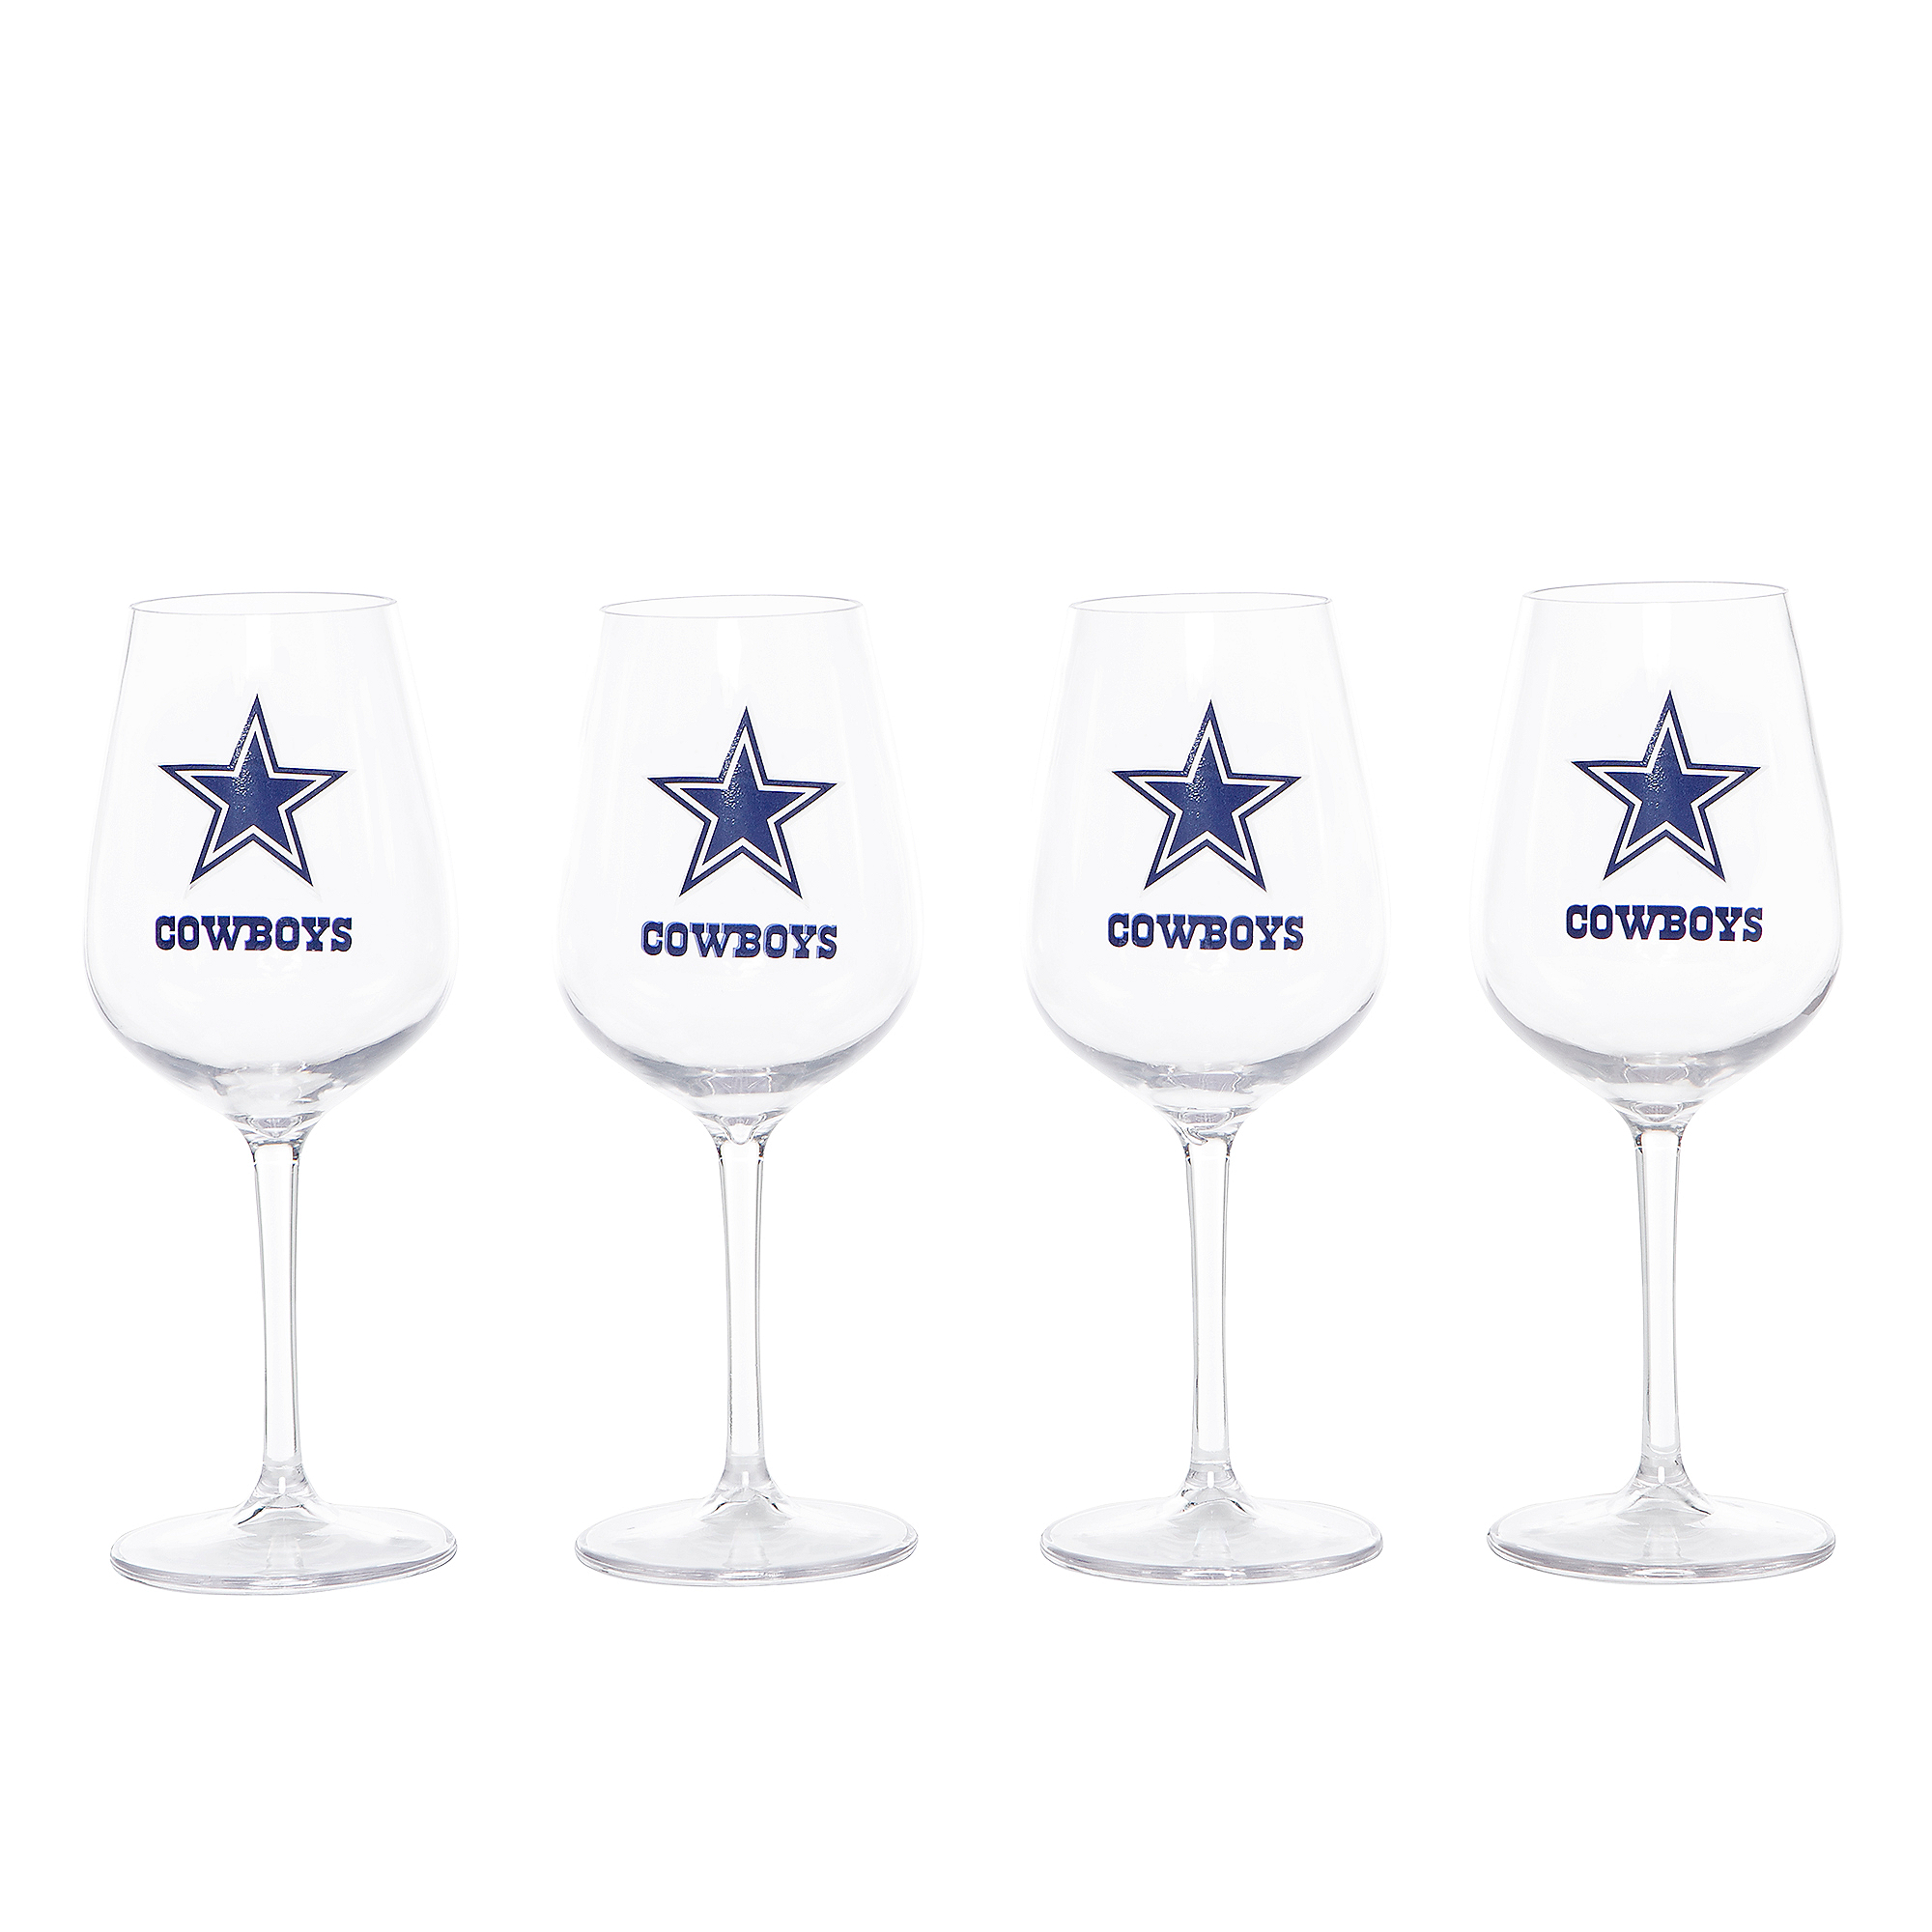 Dallas Cowboys Acrylic Stemmed Wine Glasses - 4 Pack